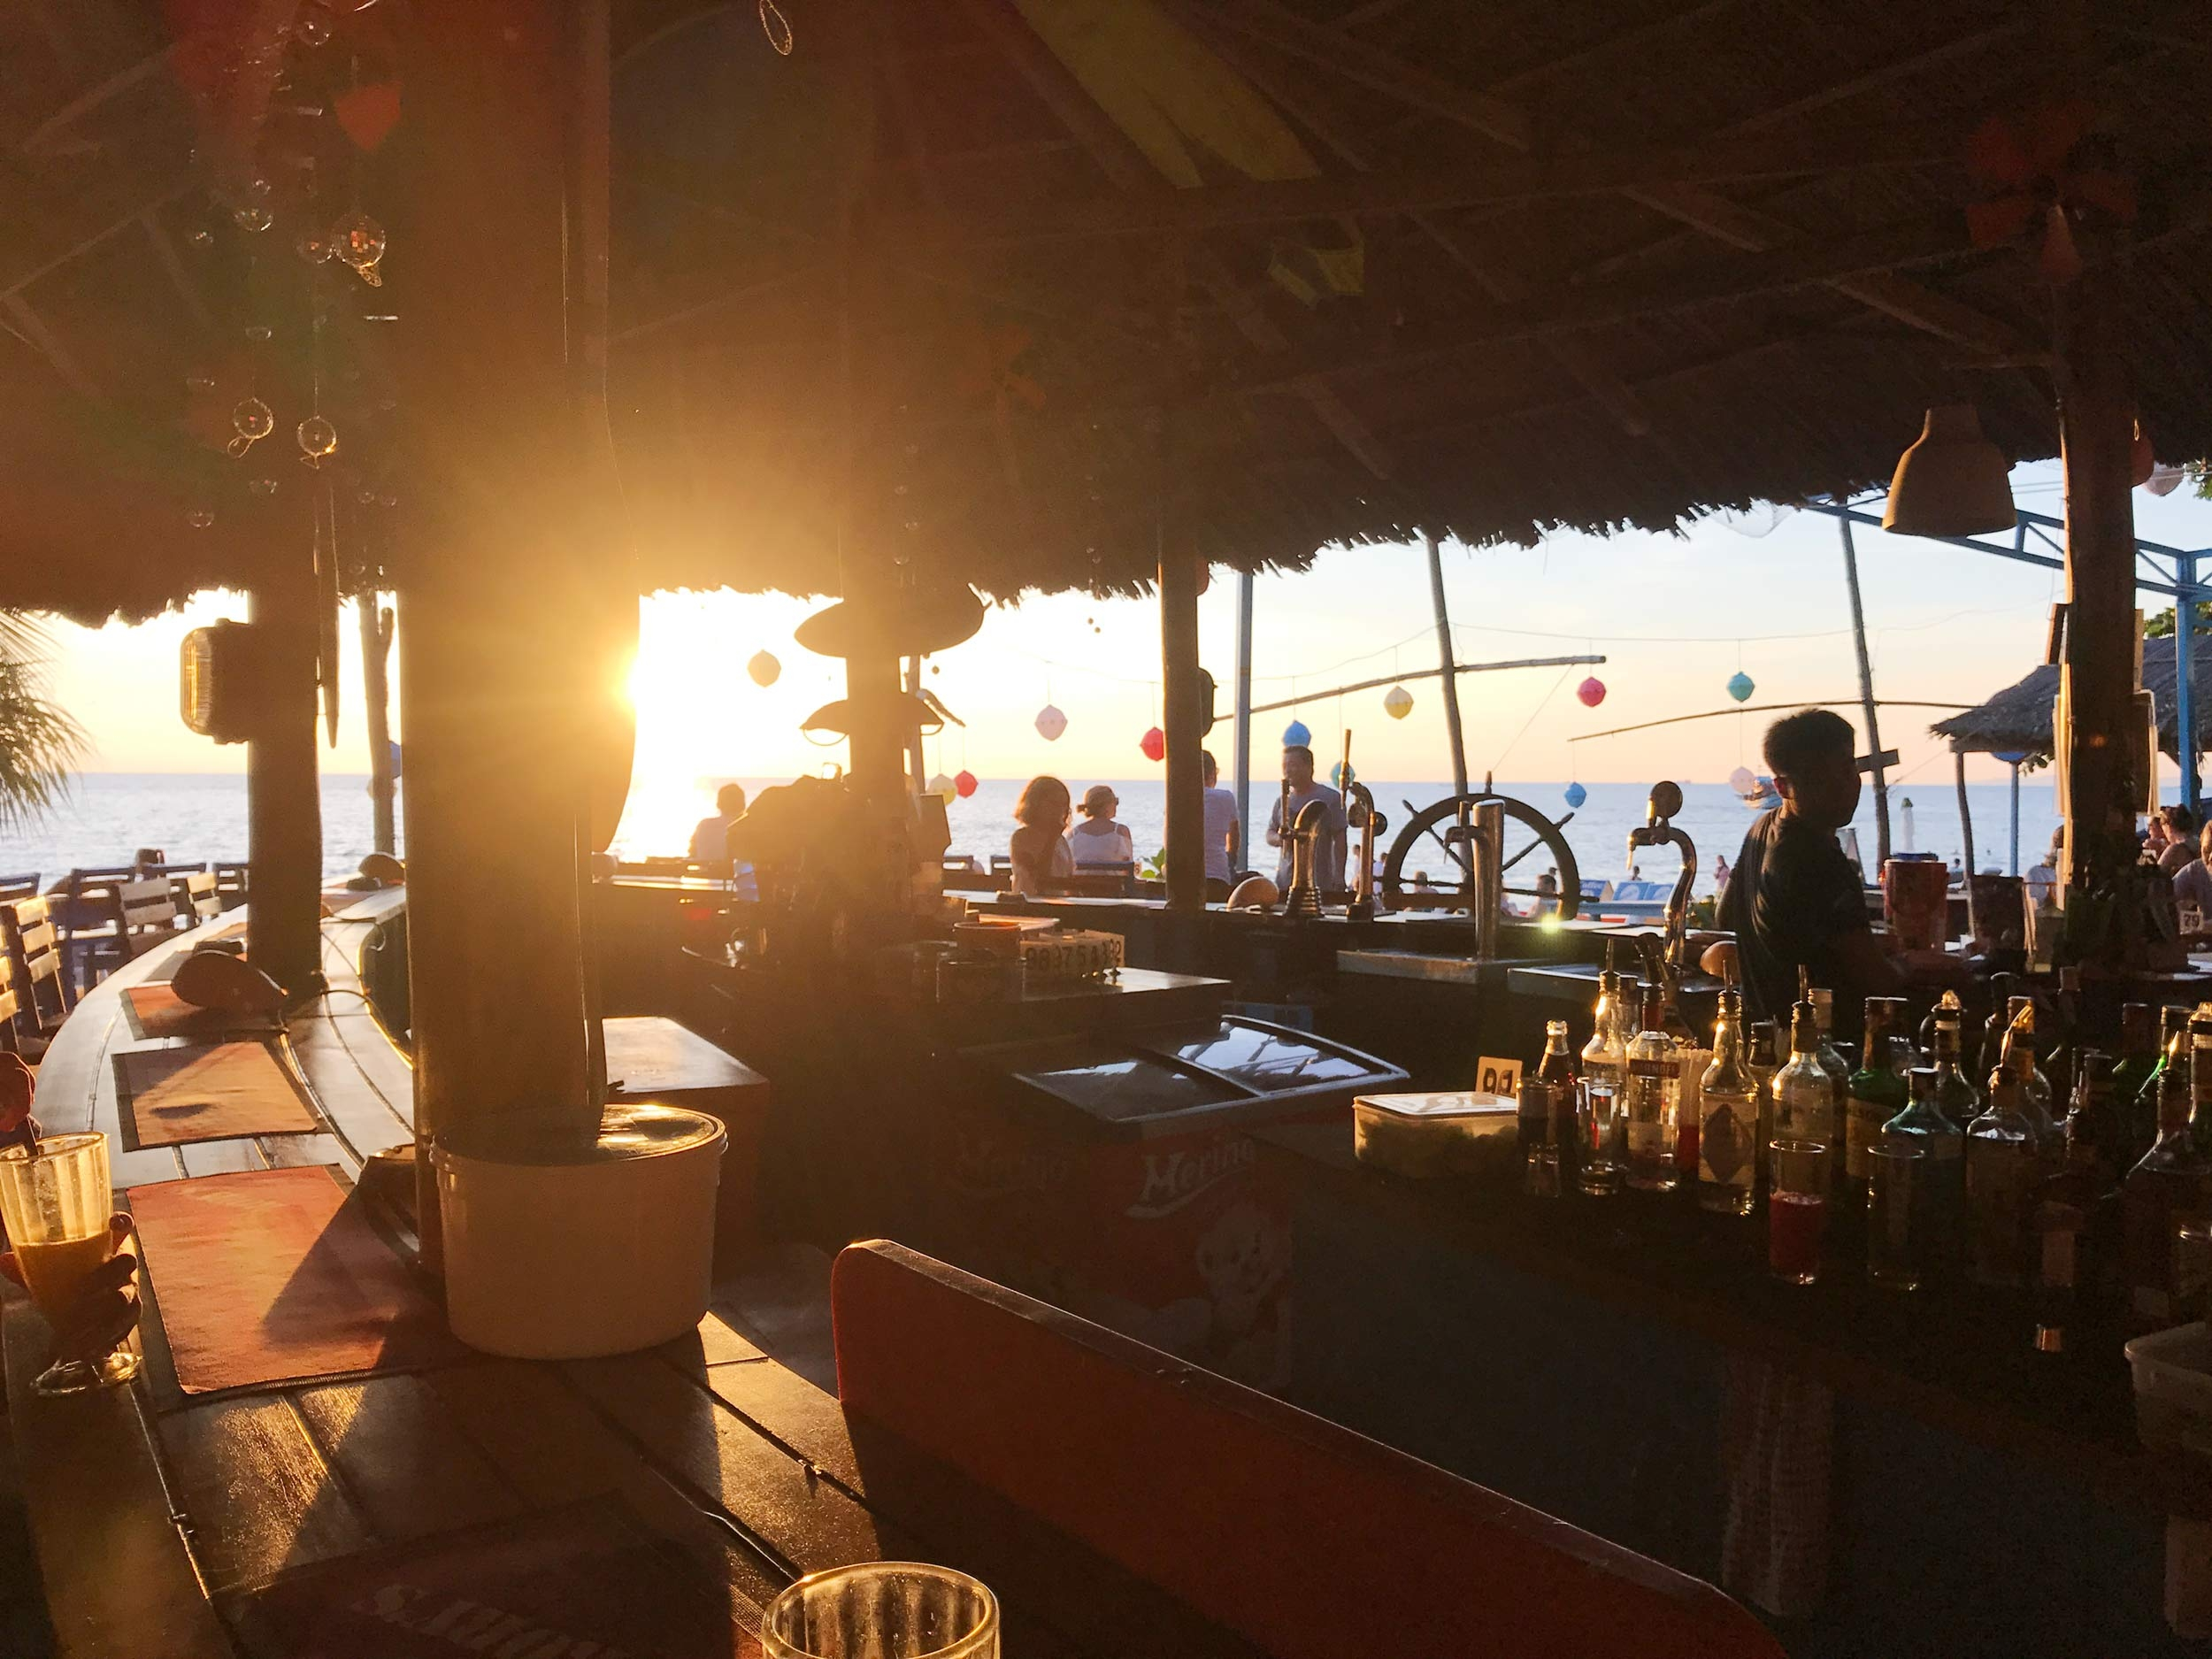 Rory's Beach Bar sits by the water and is sun kissed as the evening rolls in